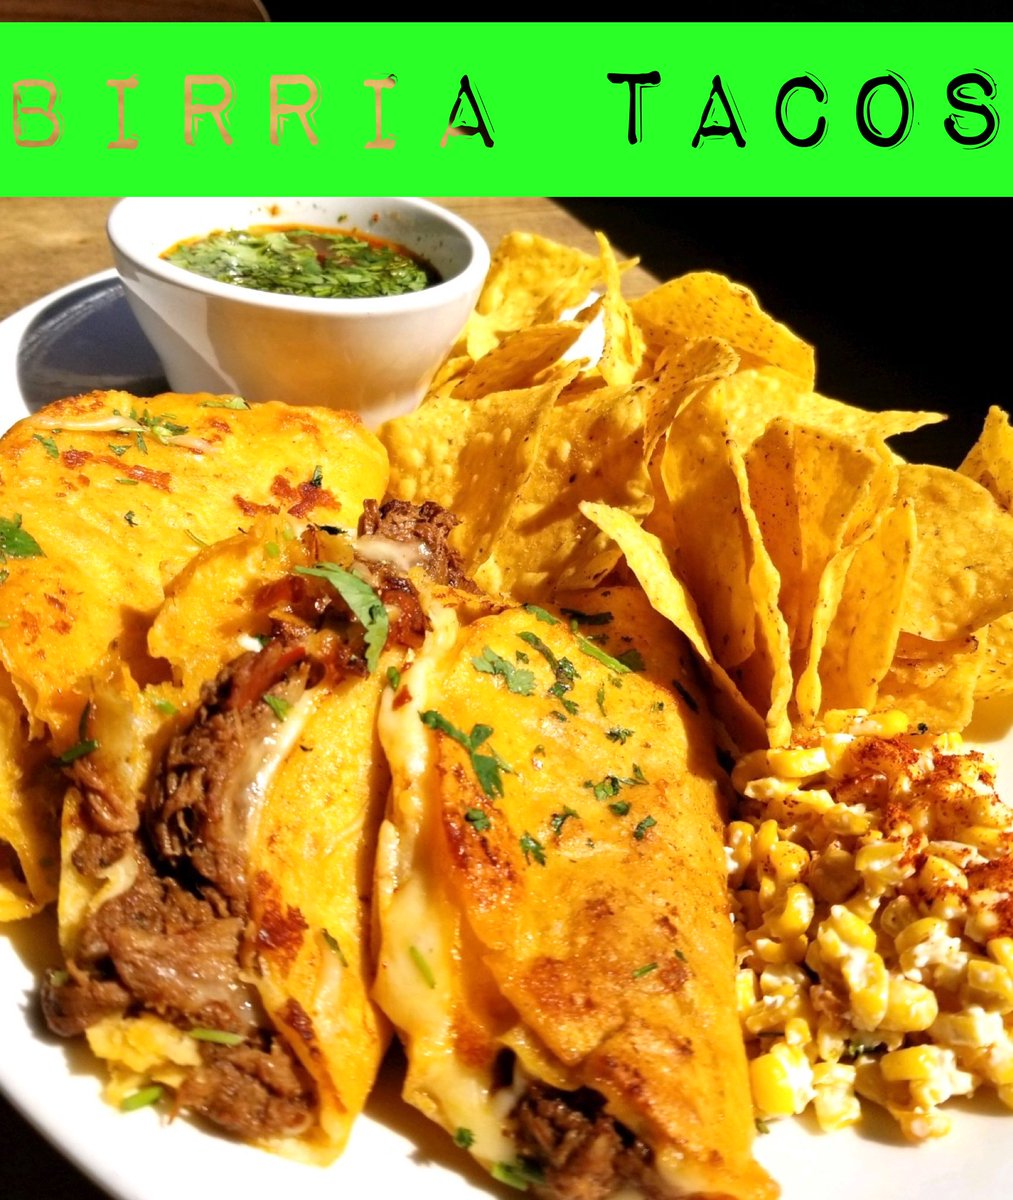 Birria Tacos on the menu this weekend!! Available for dine-in & curbside! #eatlocal #nomnom #tacosabdbeer #supportlocal #community #bettendorf #craftbeer #tacoseveryday #tagtheqc #quadcitiespic.twitter.com/DXI1ymMKvG